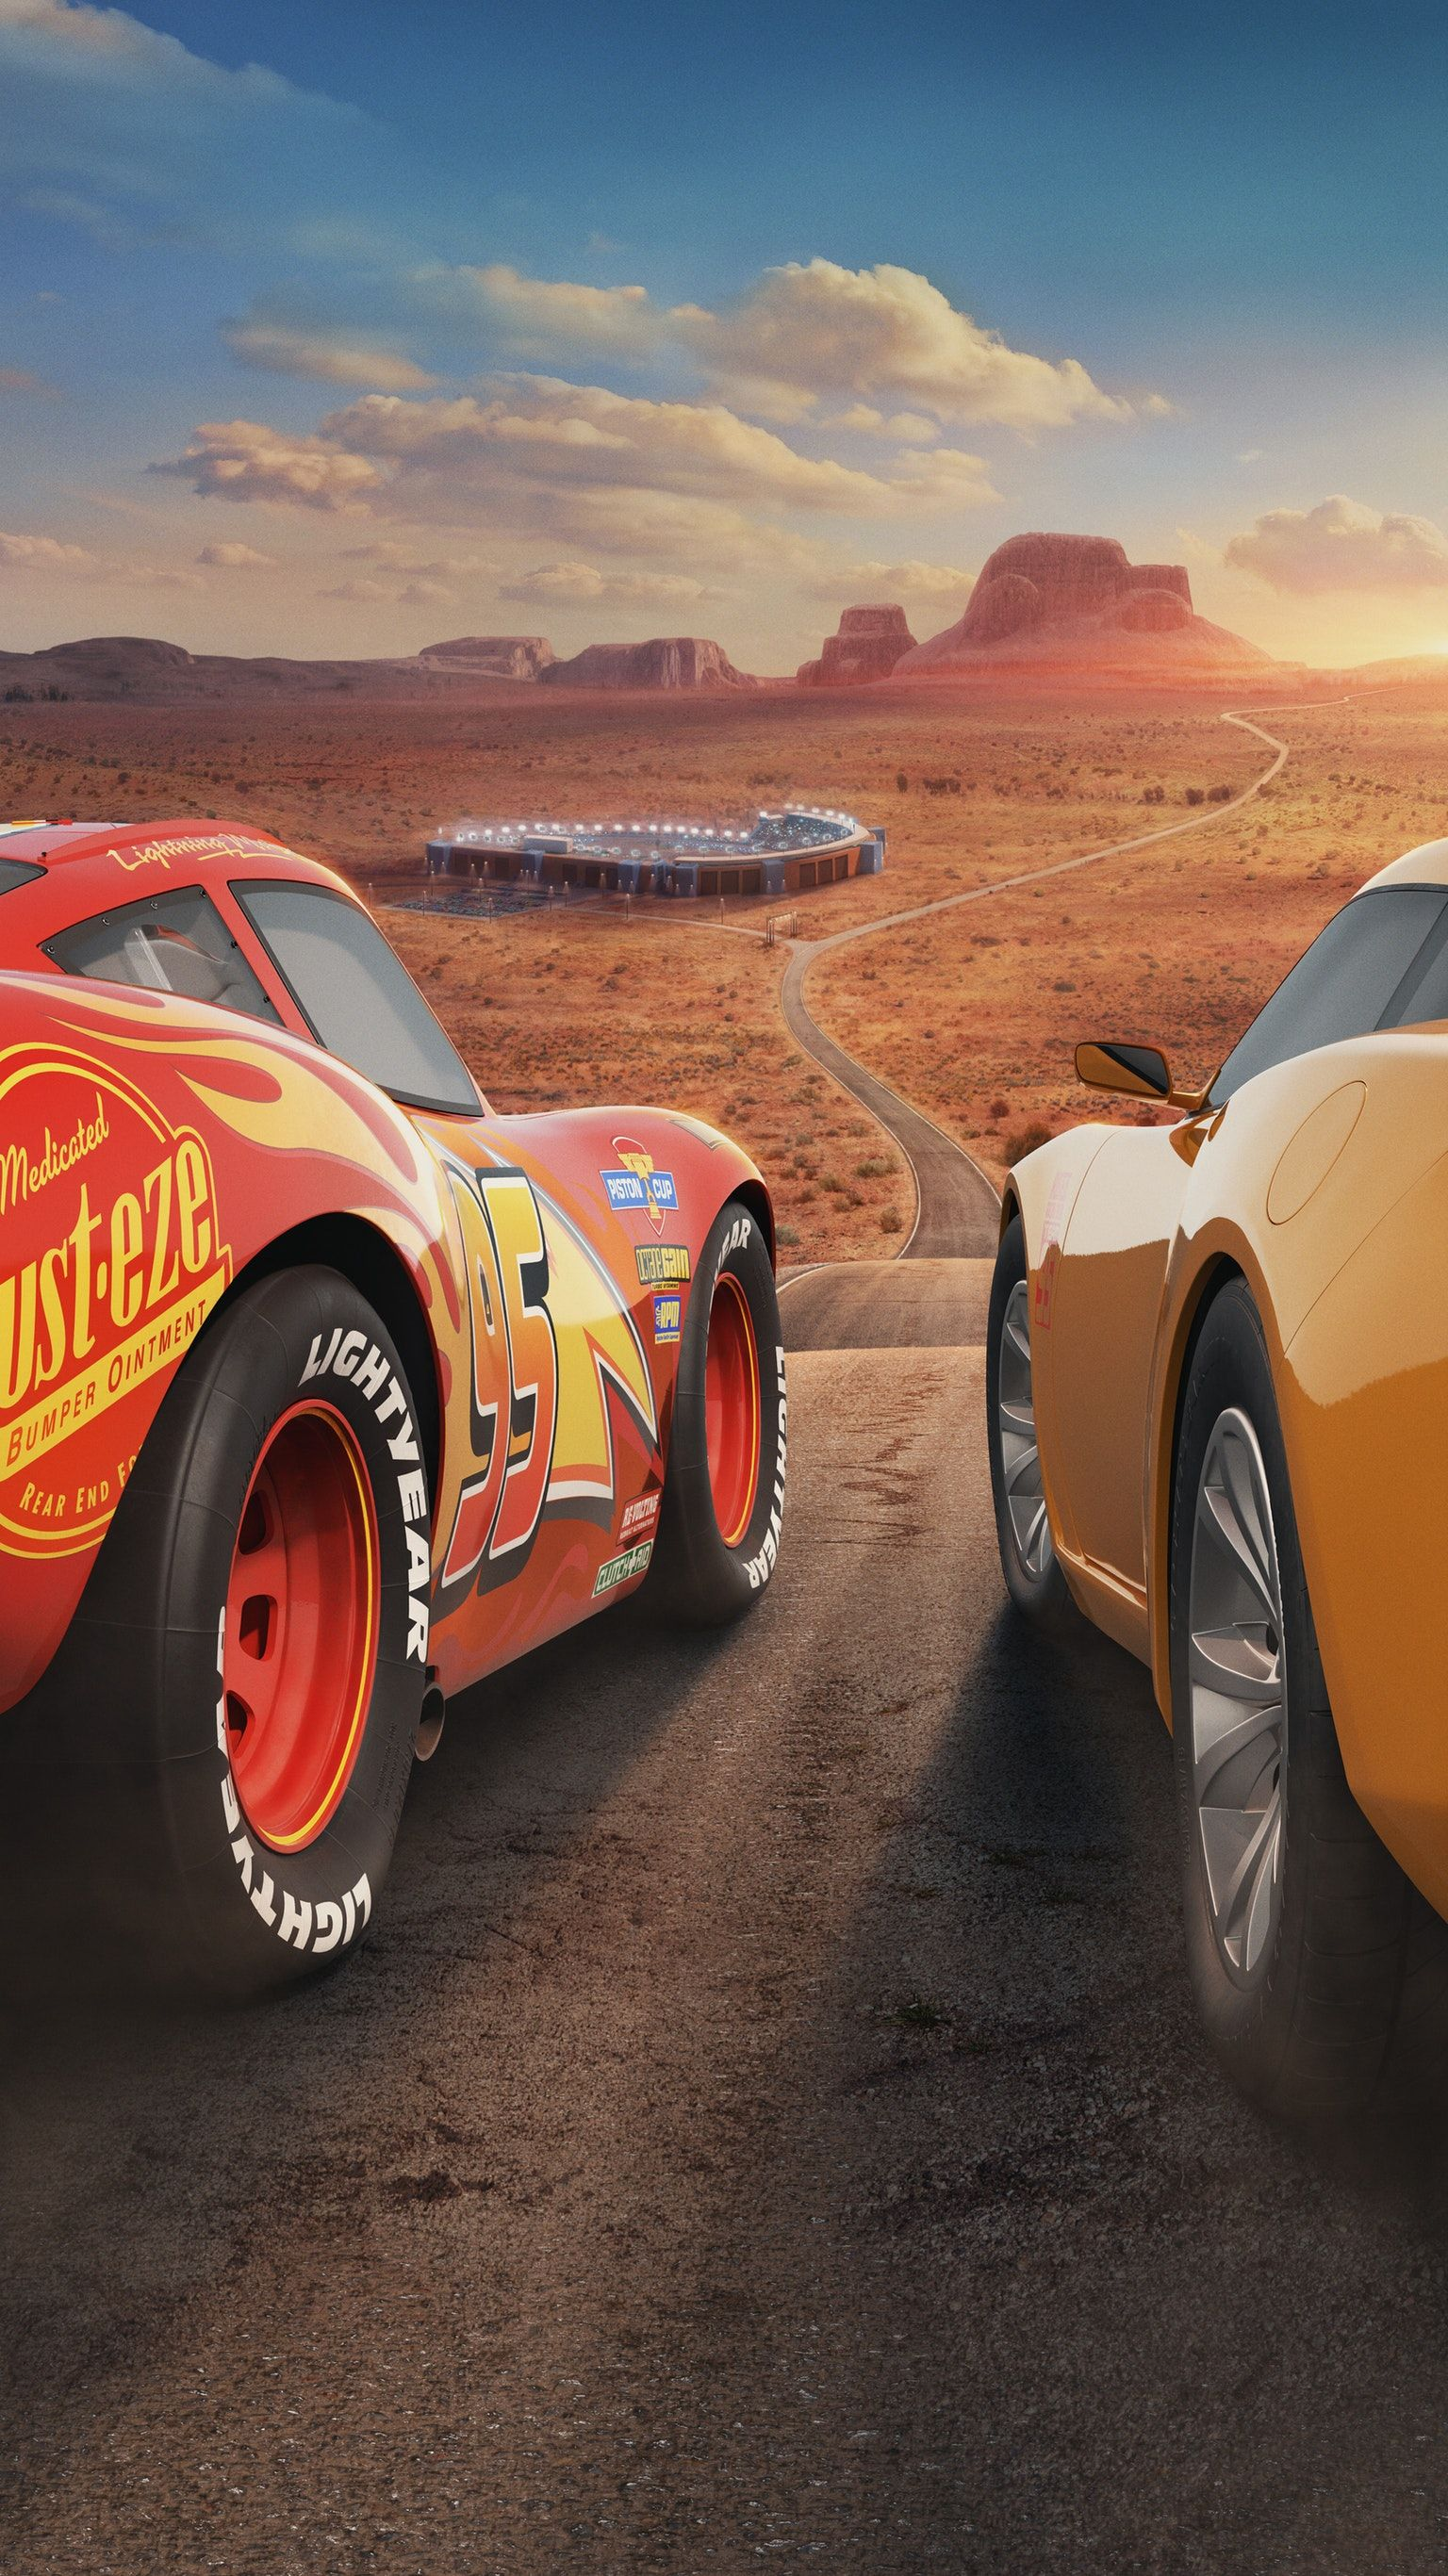 Cars 3 2017 Phone Wallpaper Moviemania Disney Cars Wallpaper Cars Movie Pixar Cars